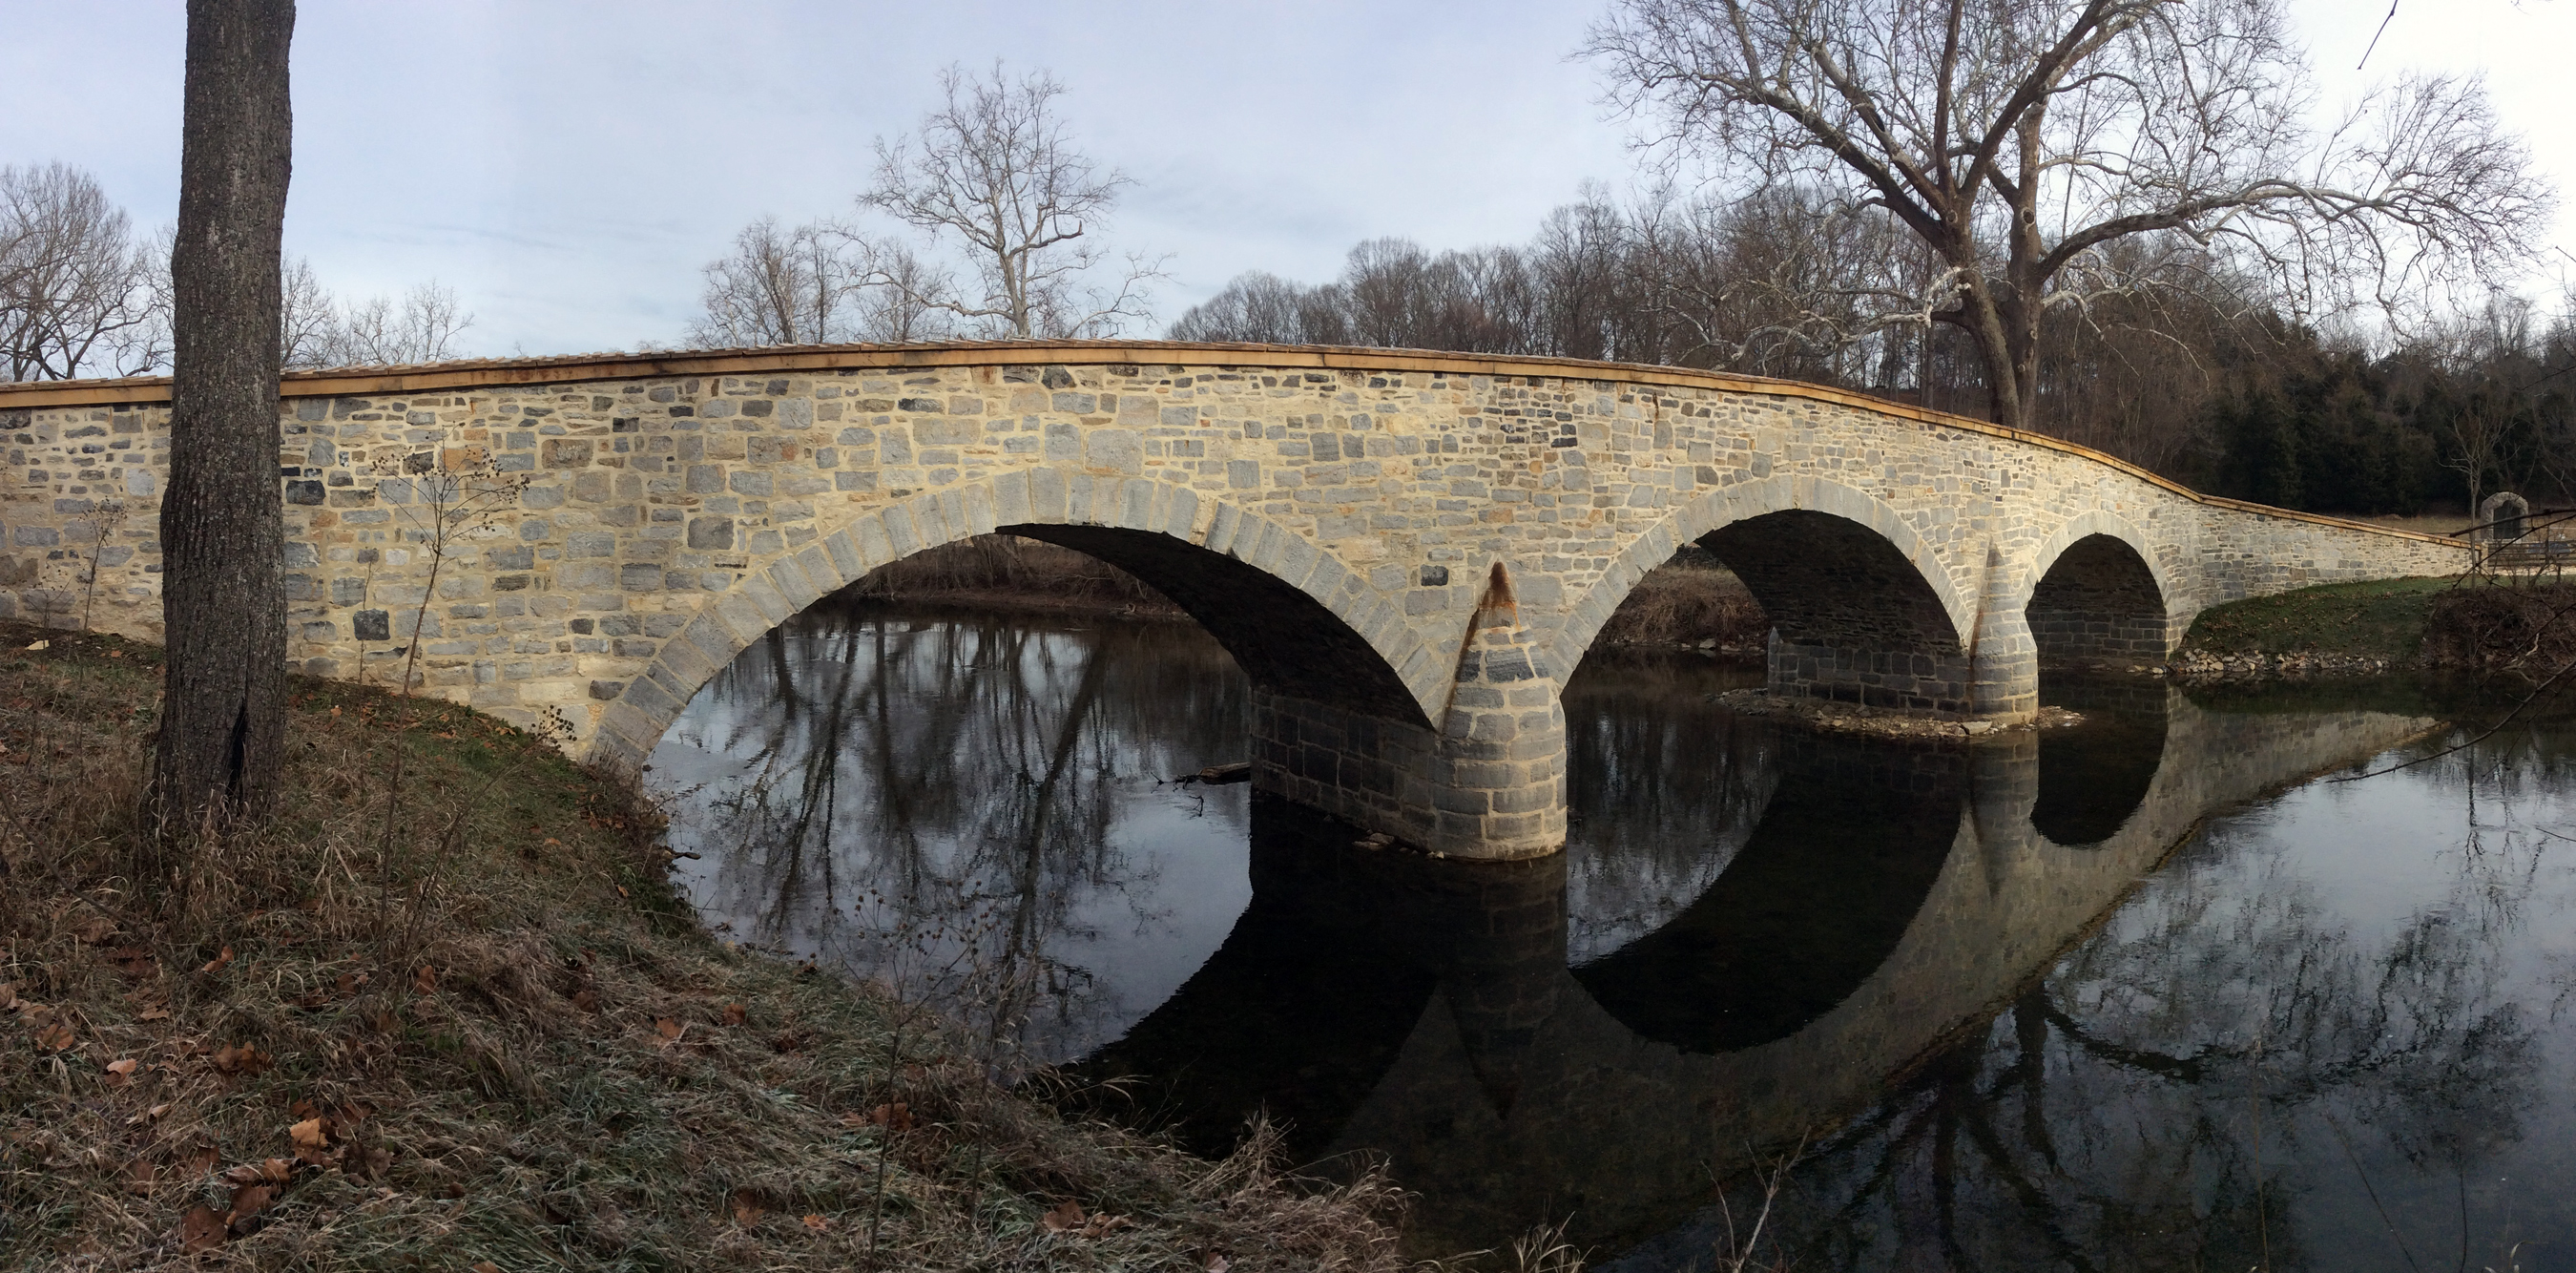 Photograph of the historic Burnside Bridge